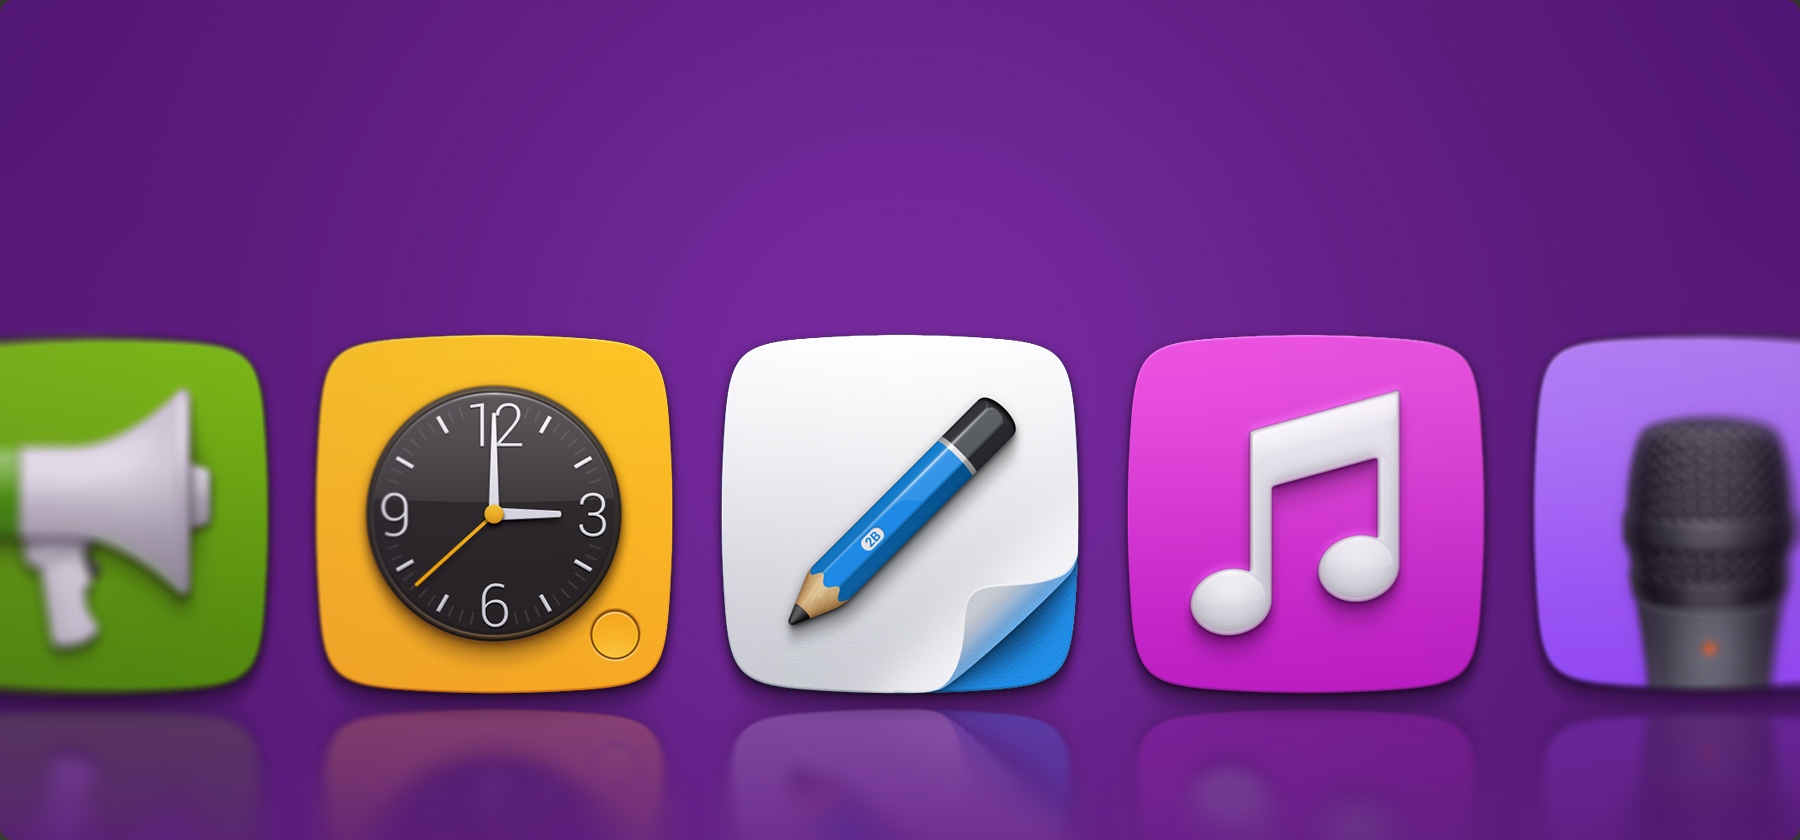 Icondrawer Free Stock Icons For Mac Os X Software Web Design